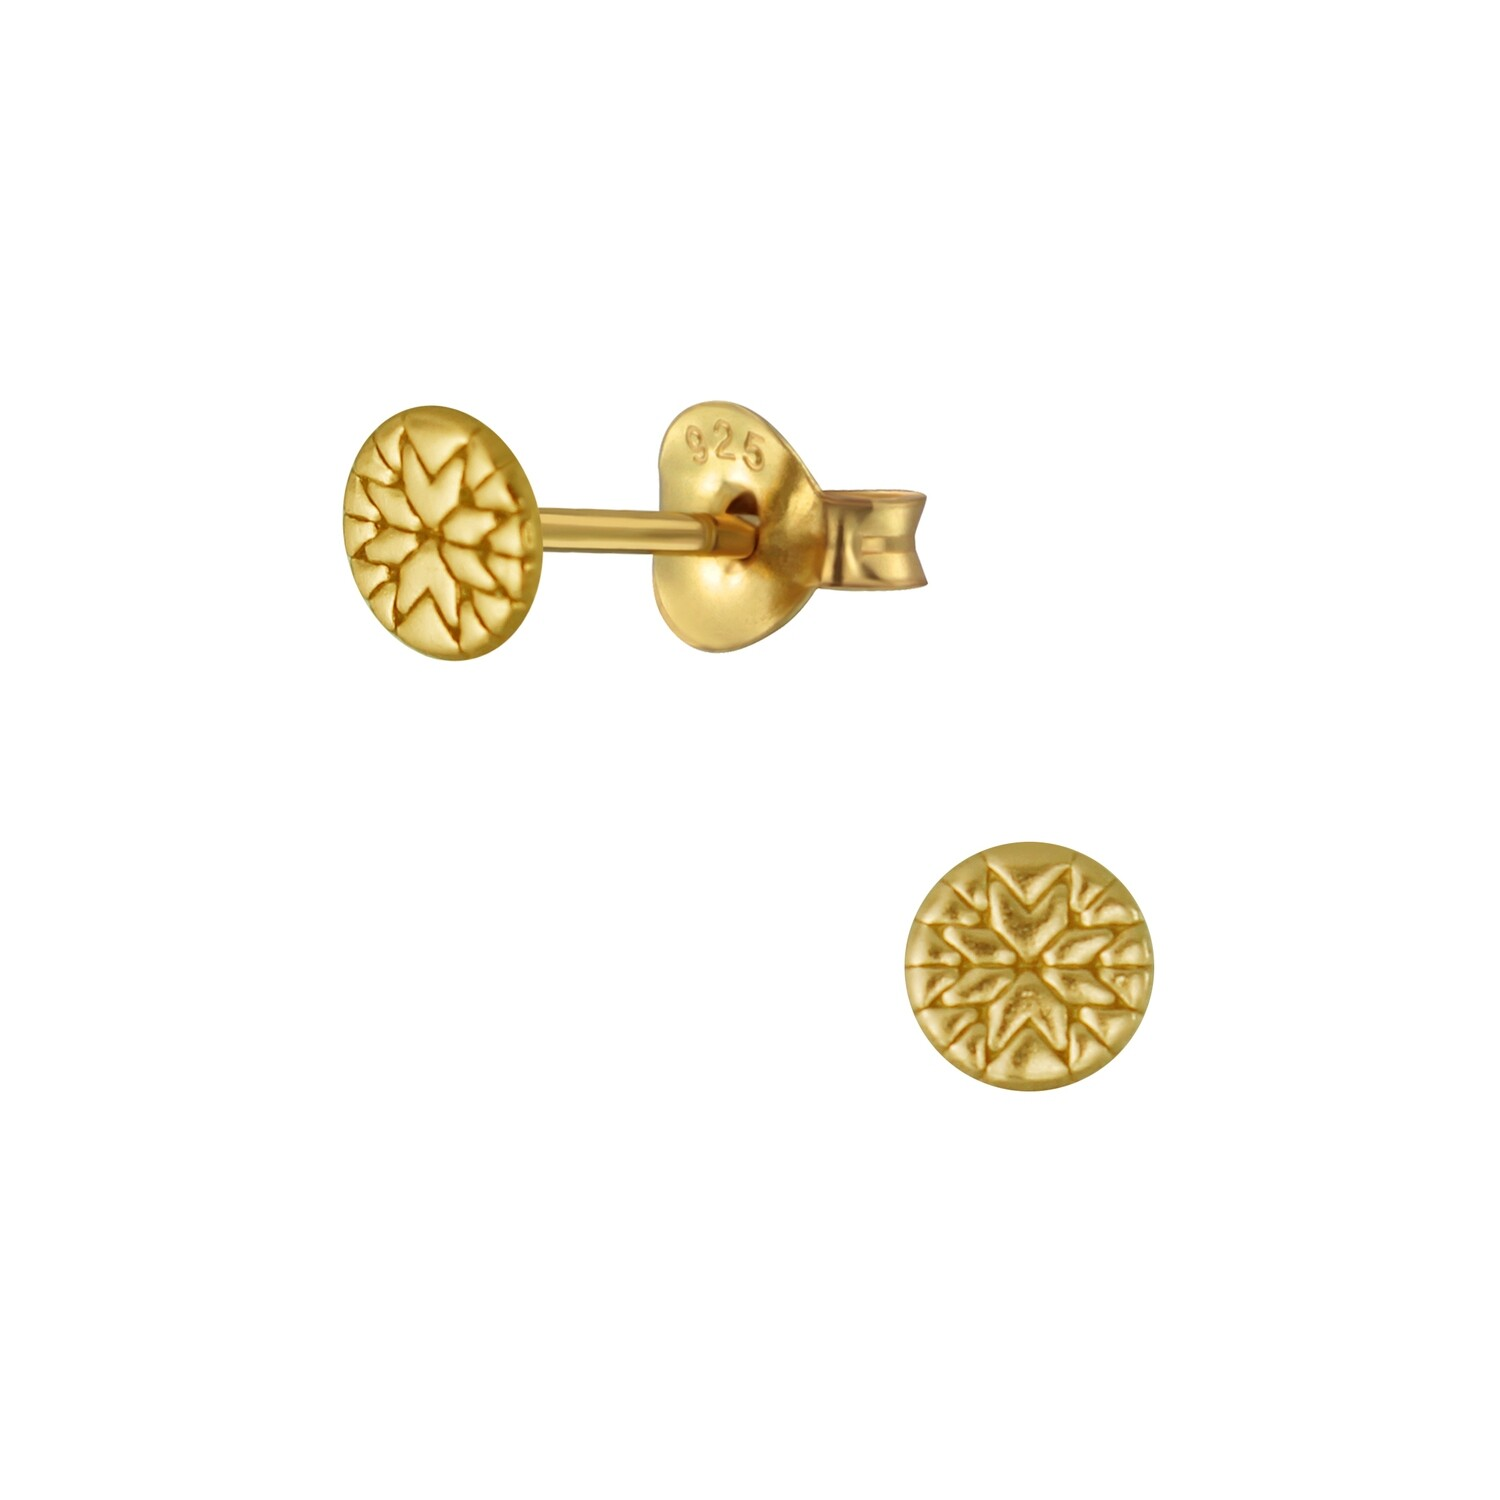 Tiny Floral Stamped Circle Posts - Gold Plated Sterling Silver - P60-6